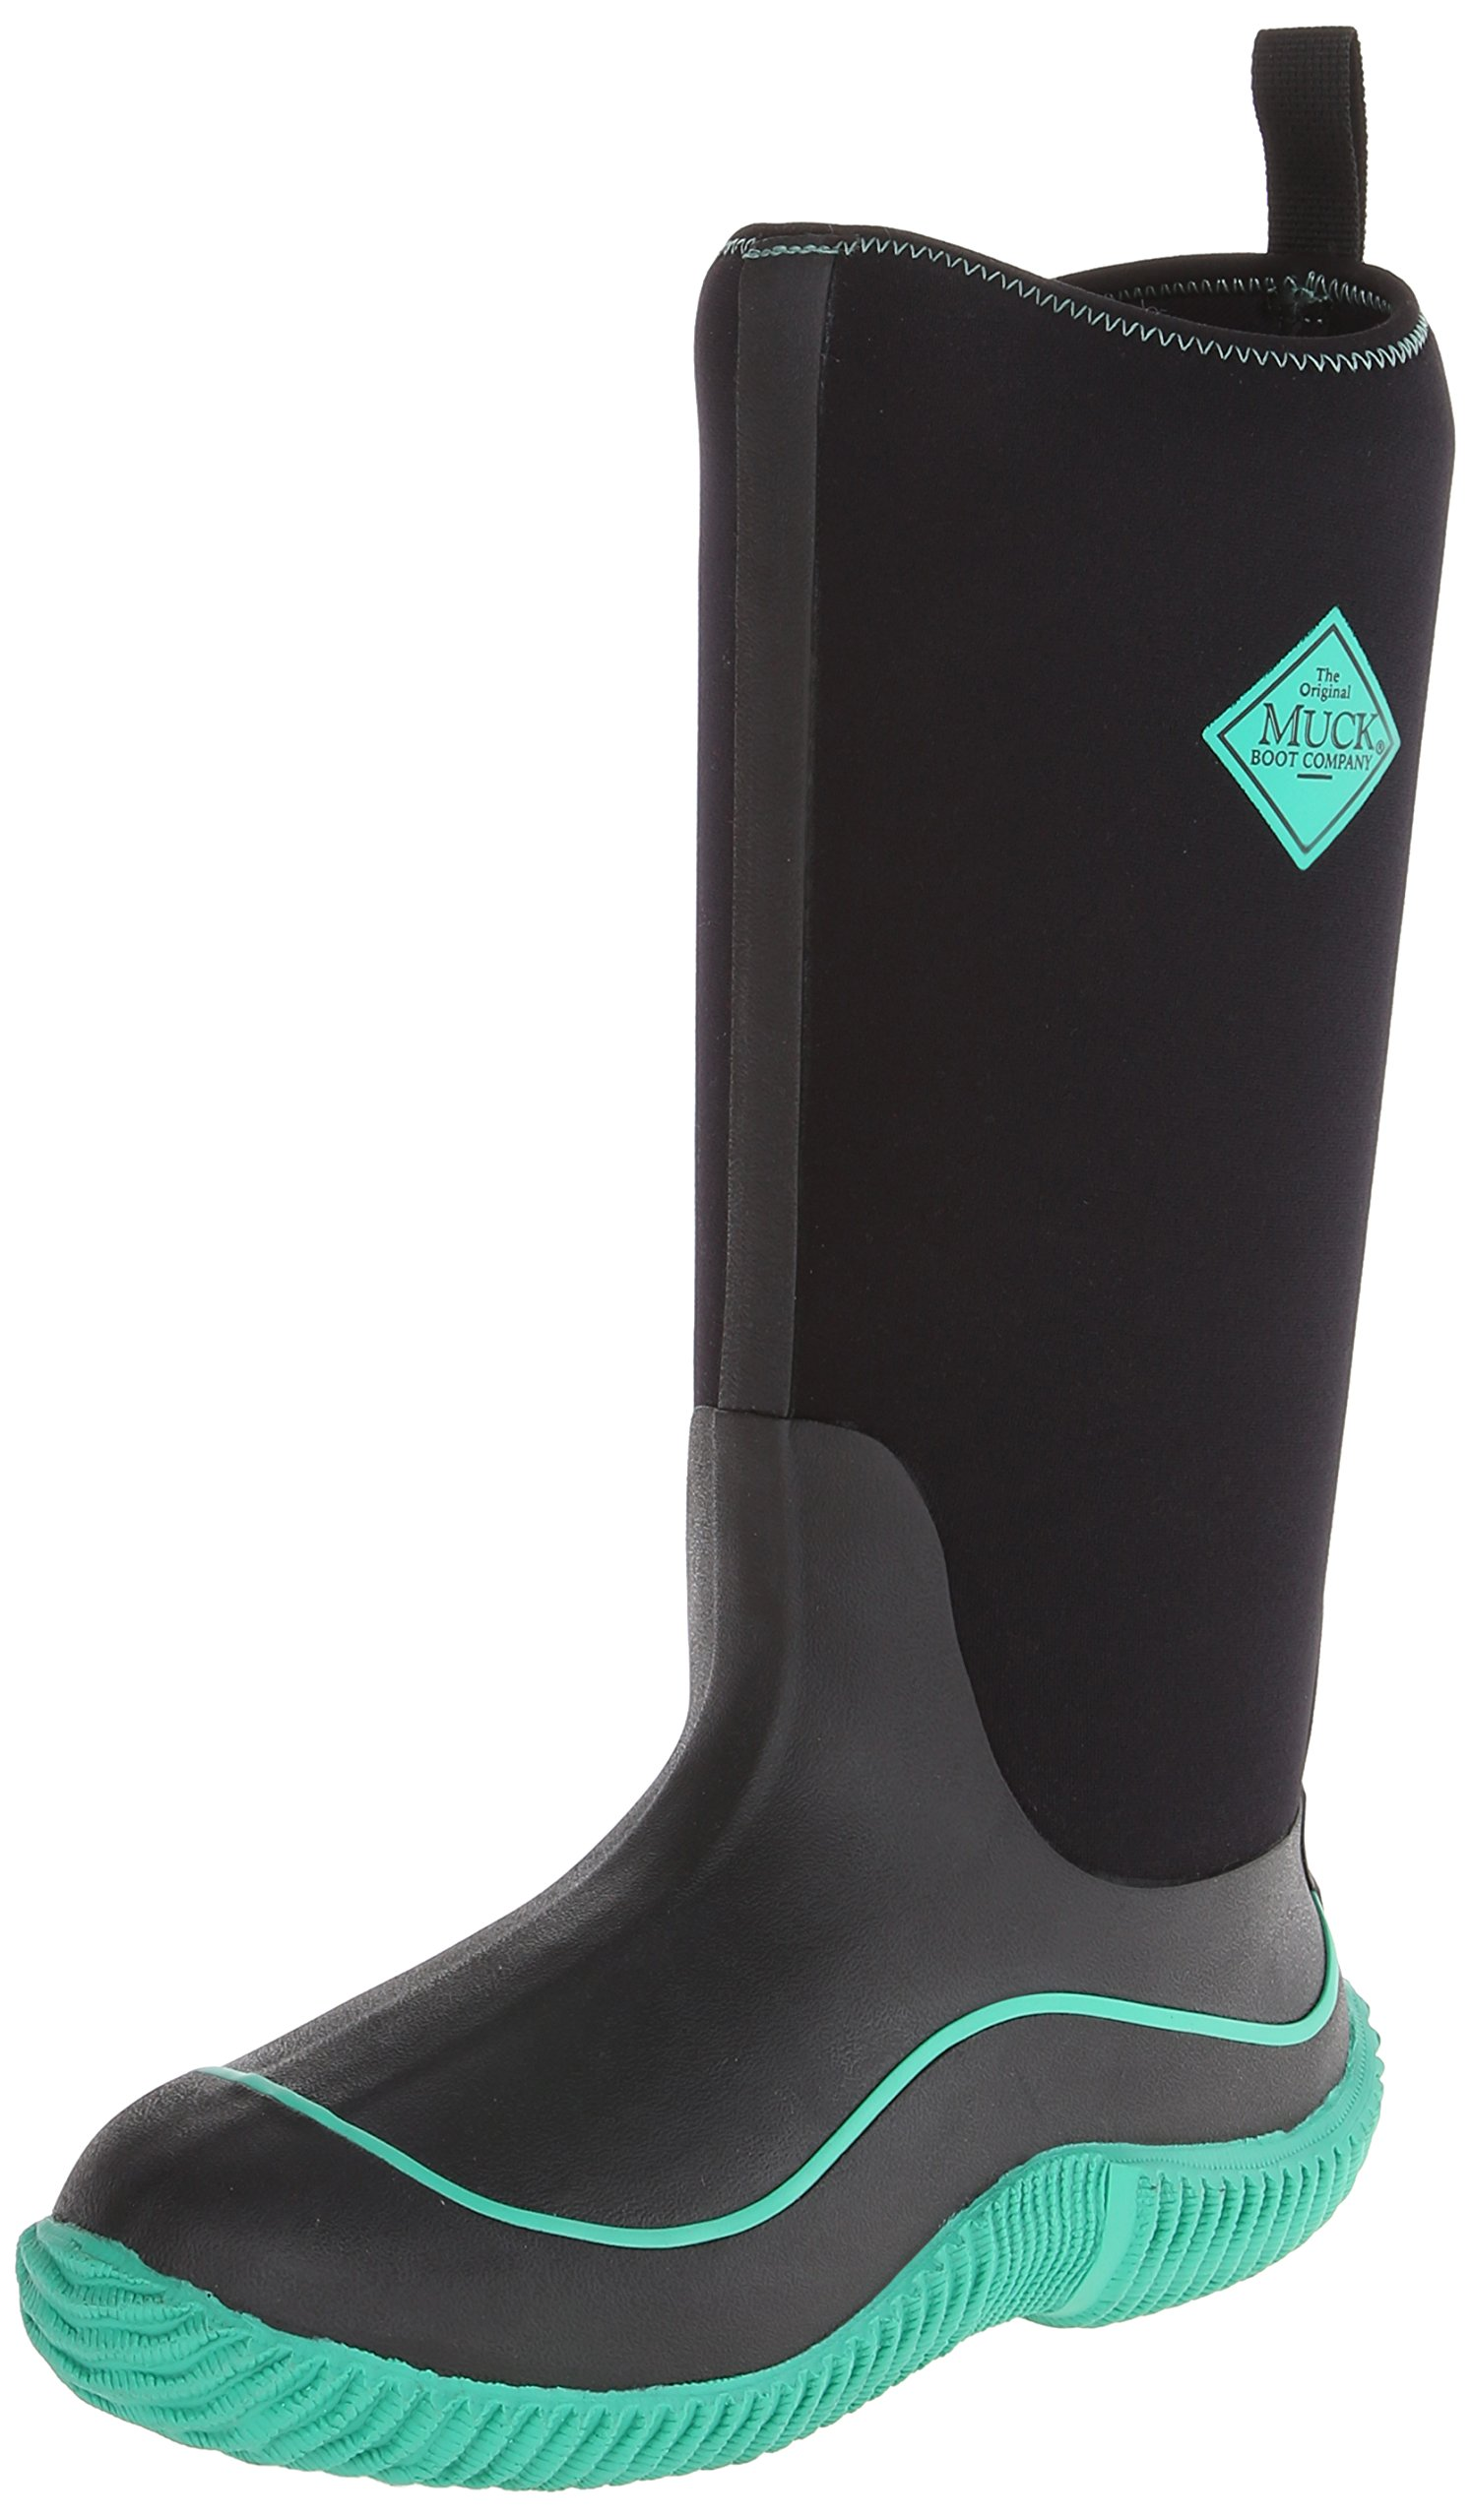 Muck Boots Hale Multi-Season Women's Rubber Boot, Black/Jade, 6 M US